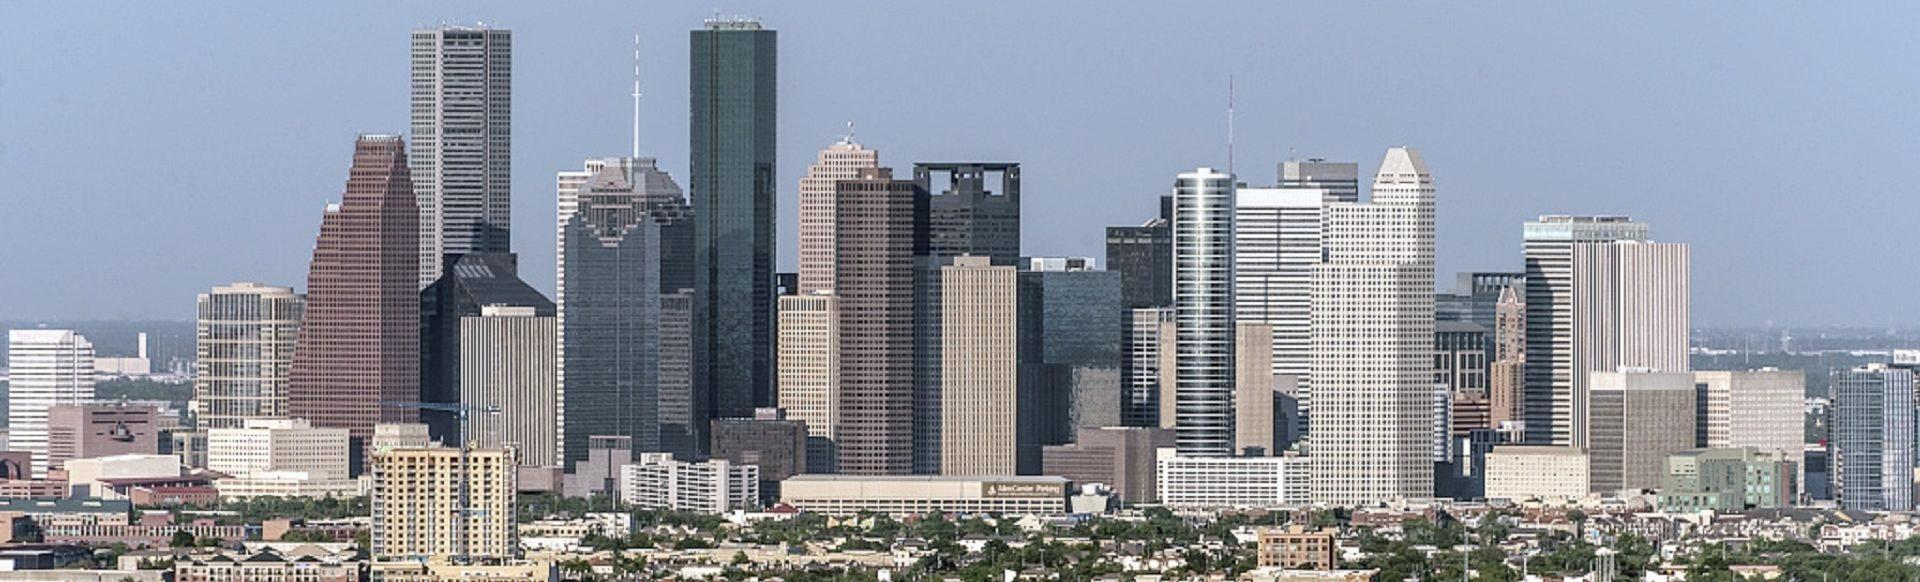 houston_skyline